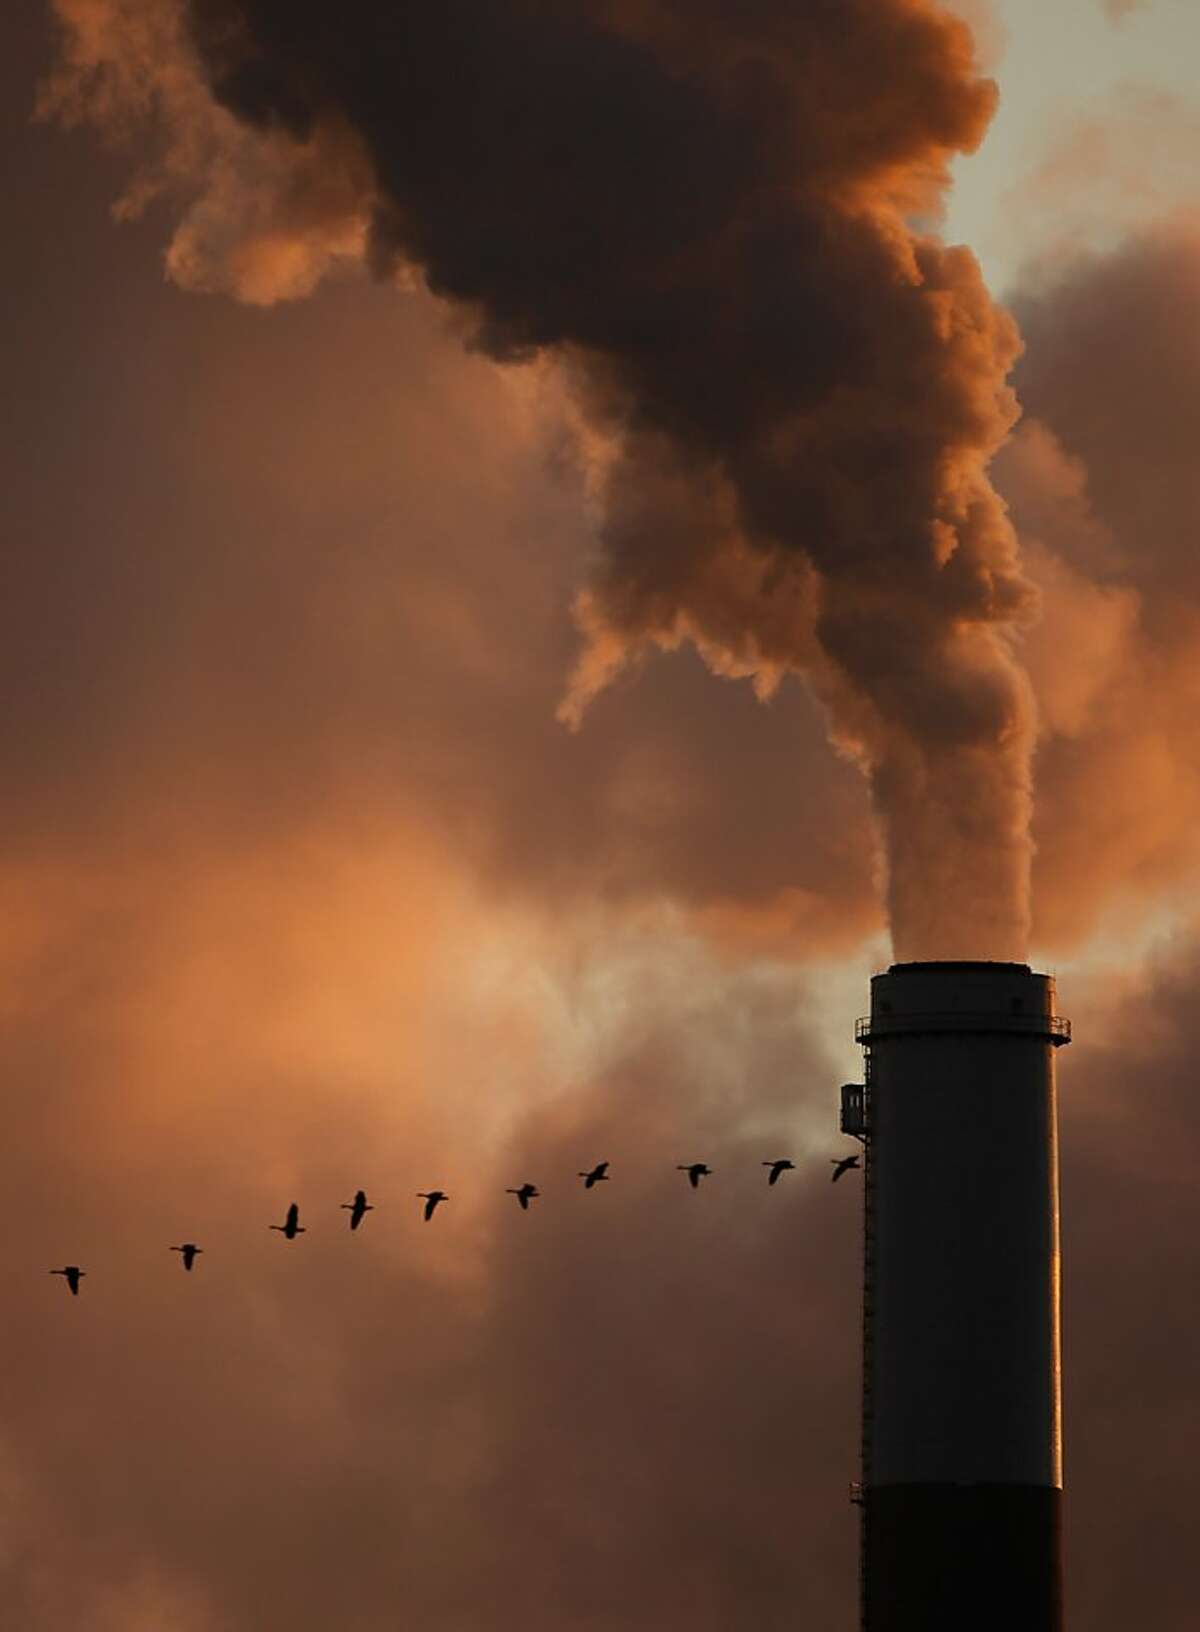 A Jan. 10, 2009 file photo shows a flock of geese flying past a smokestack at the Jeffery Energy Center coal power plant near Emmitt, Kan.